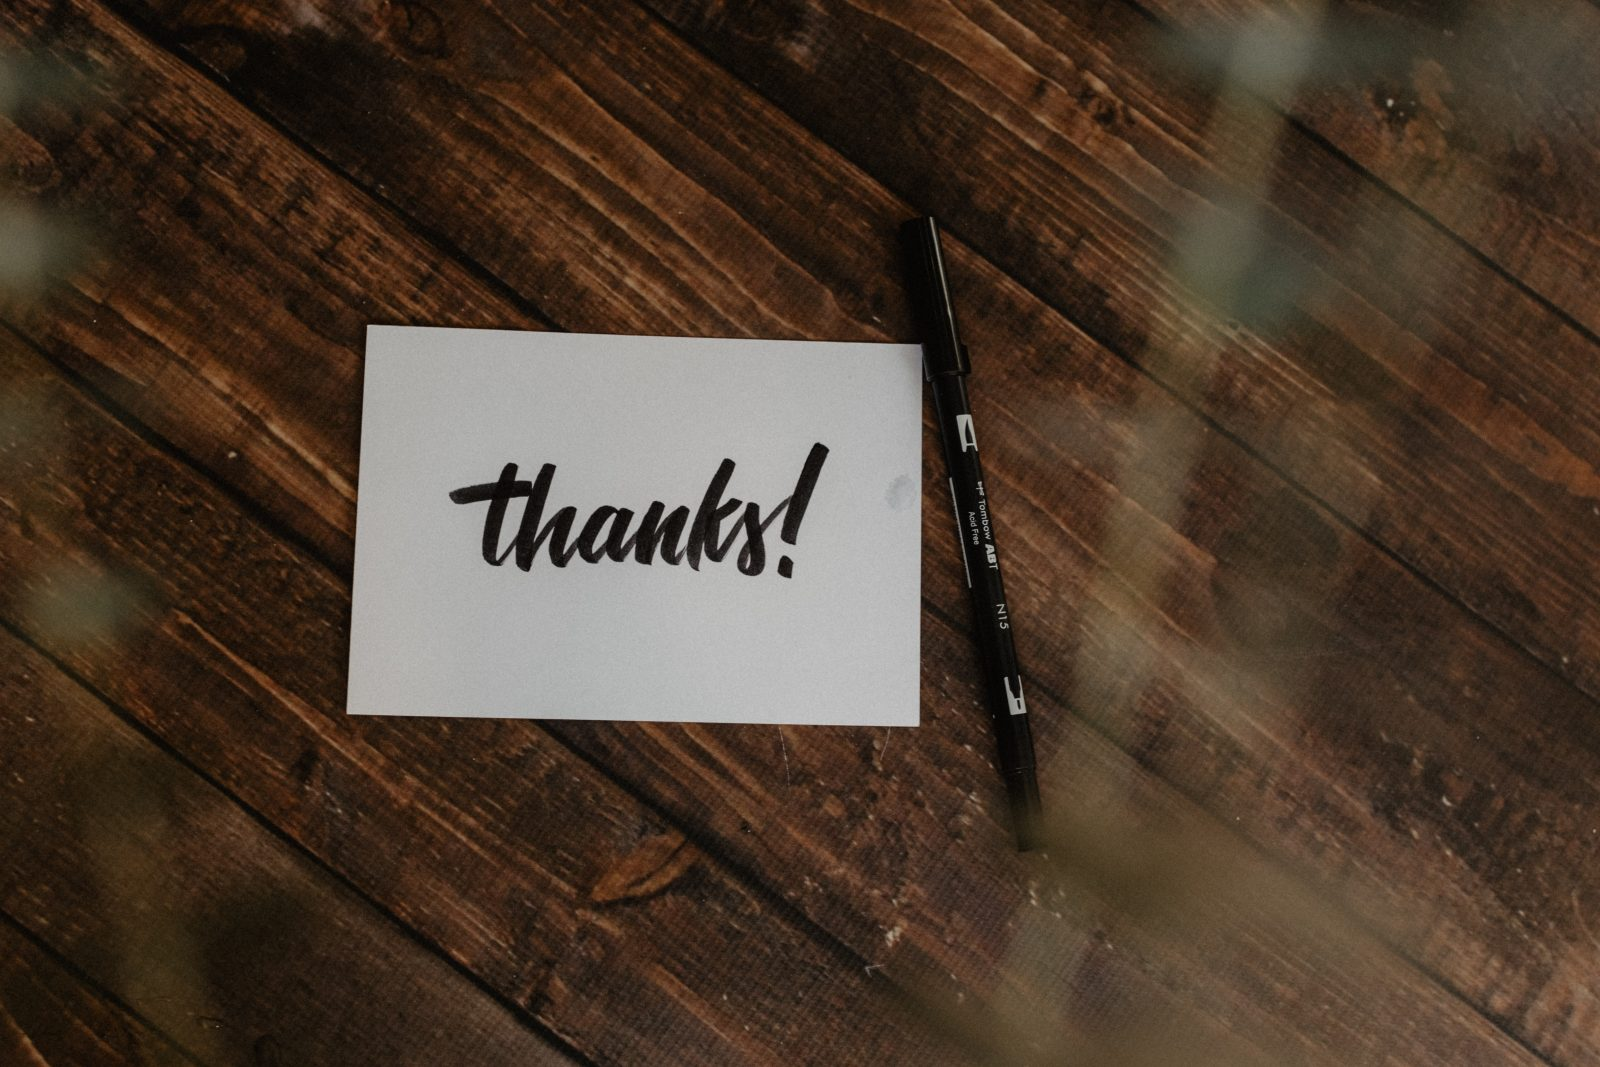 A thank you card for volunteer appreciation week on a wooden table